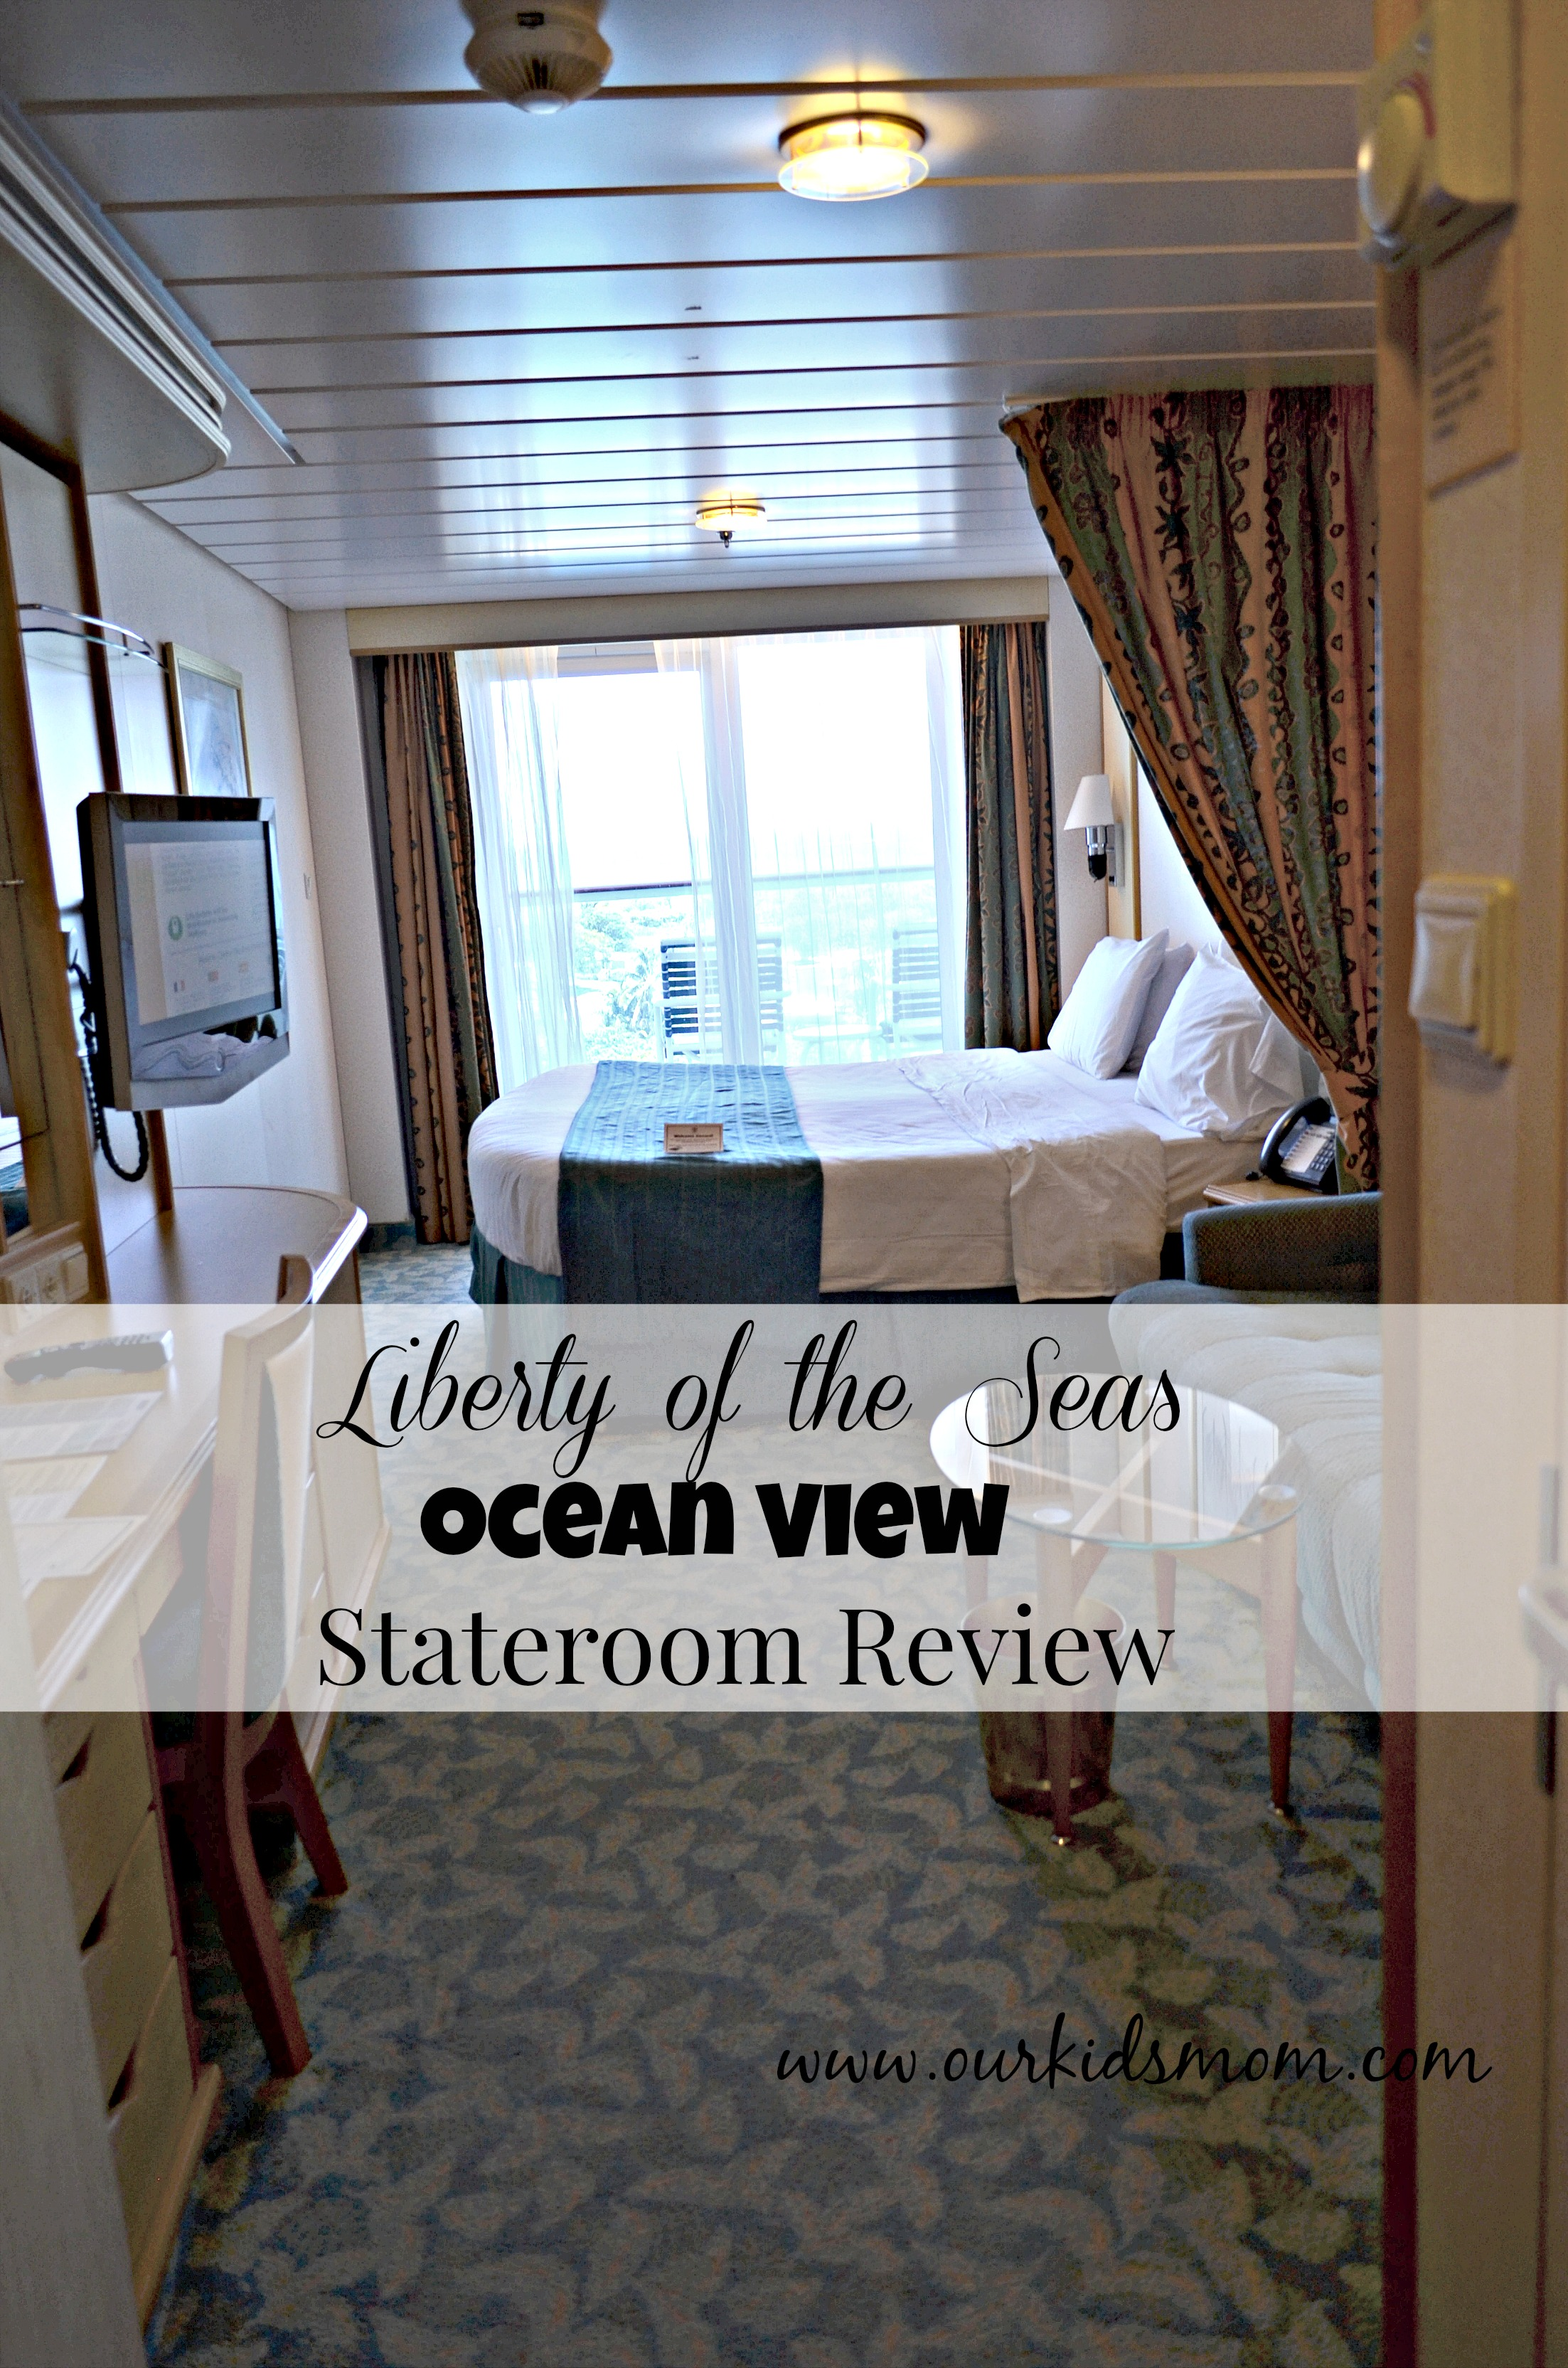 Rooms Review: Liberty Of The Seas Ocean View Stateroom With Balcony Review